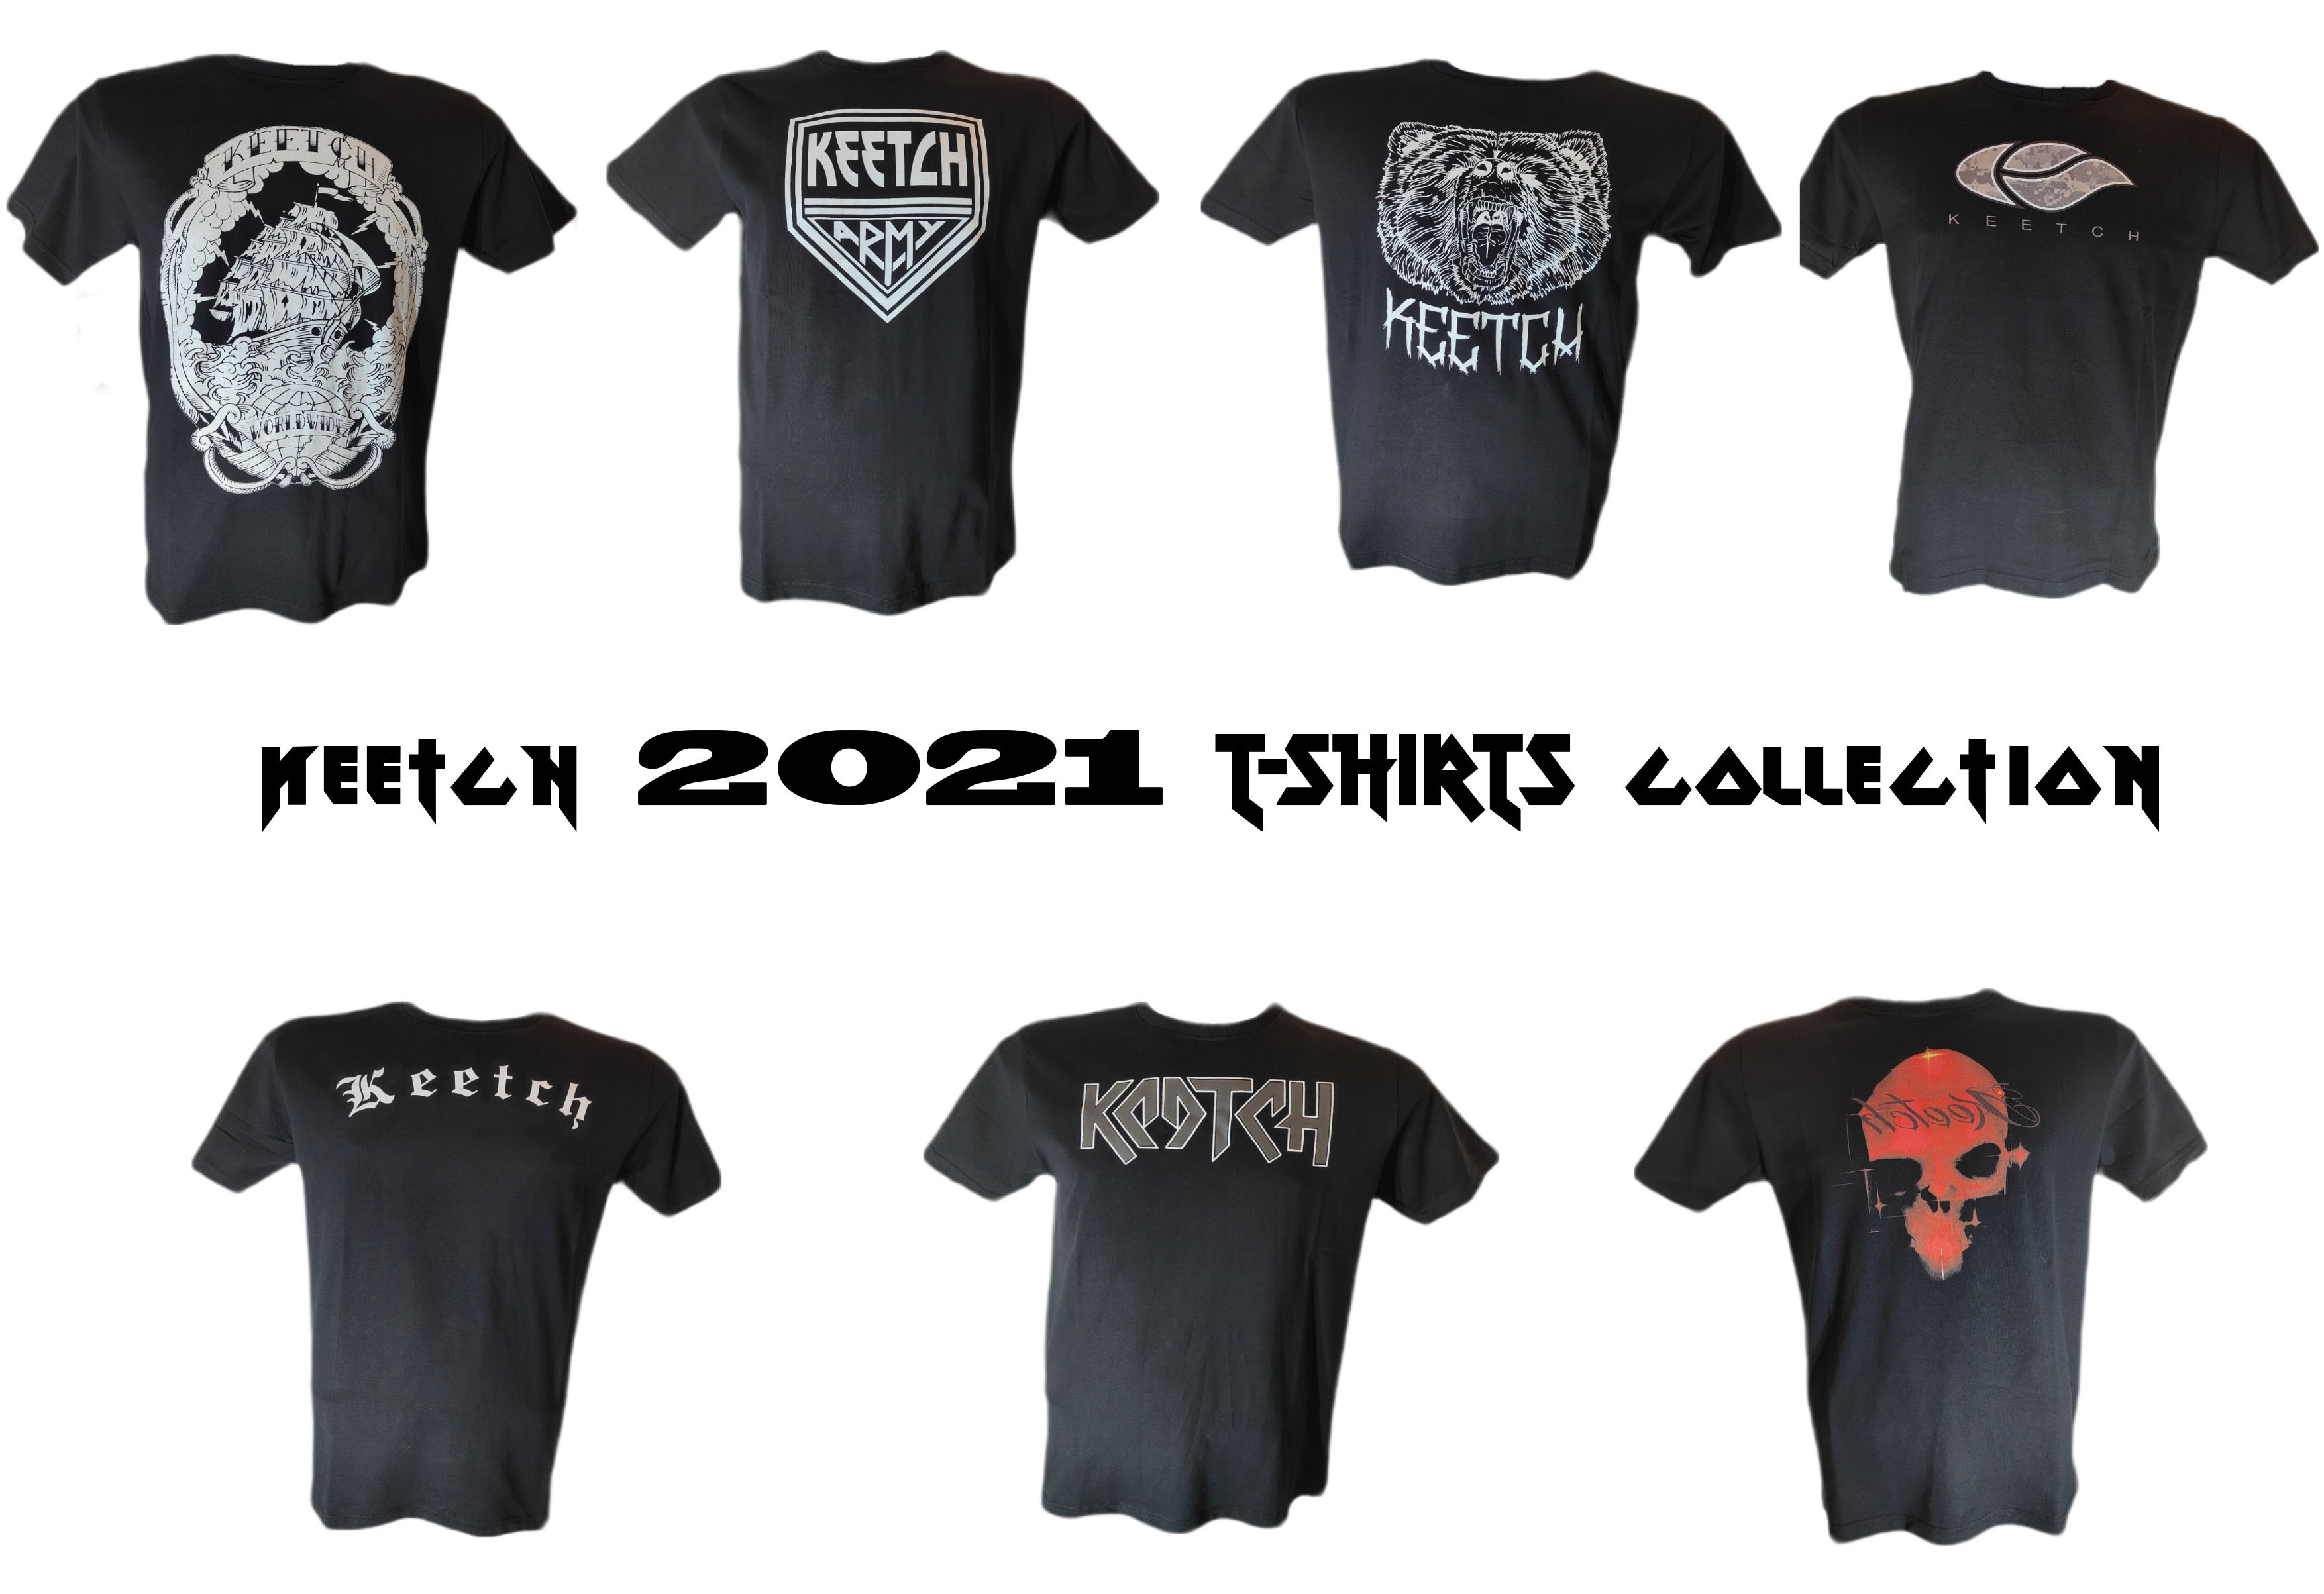 New summer 2021 collection